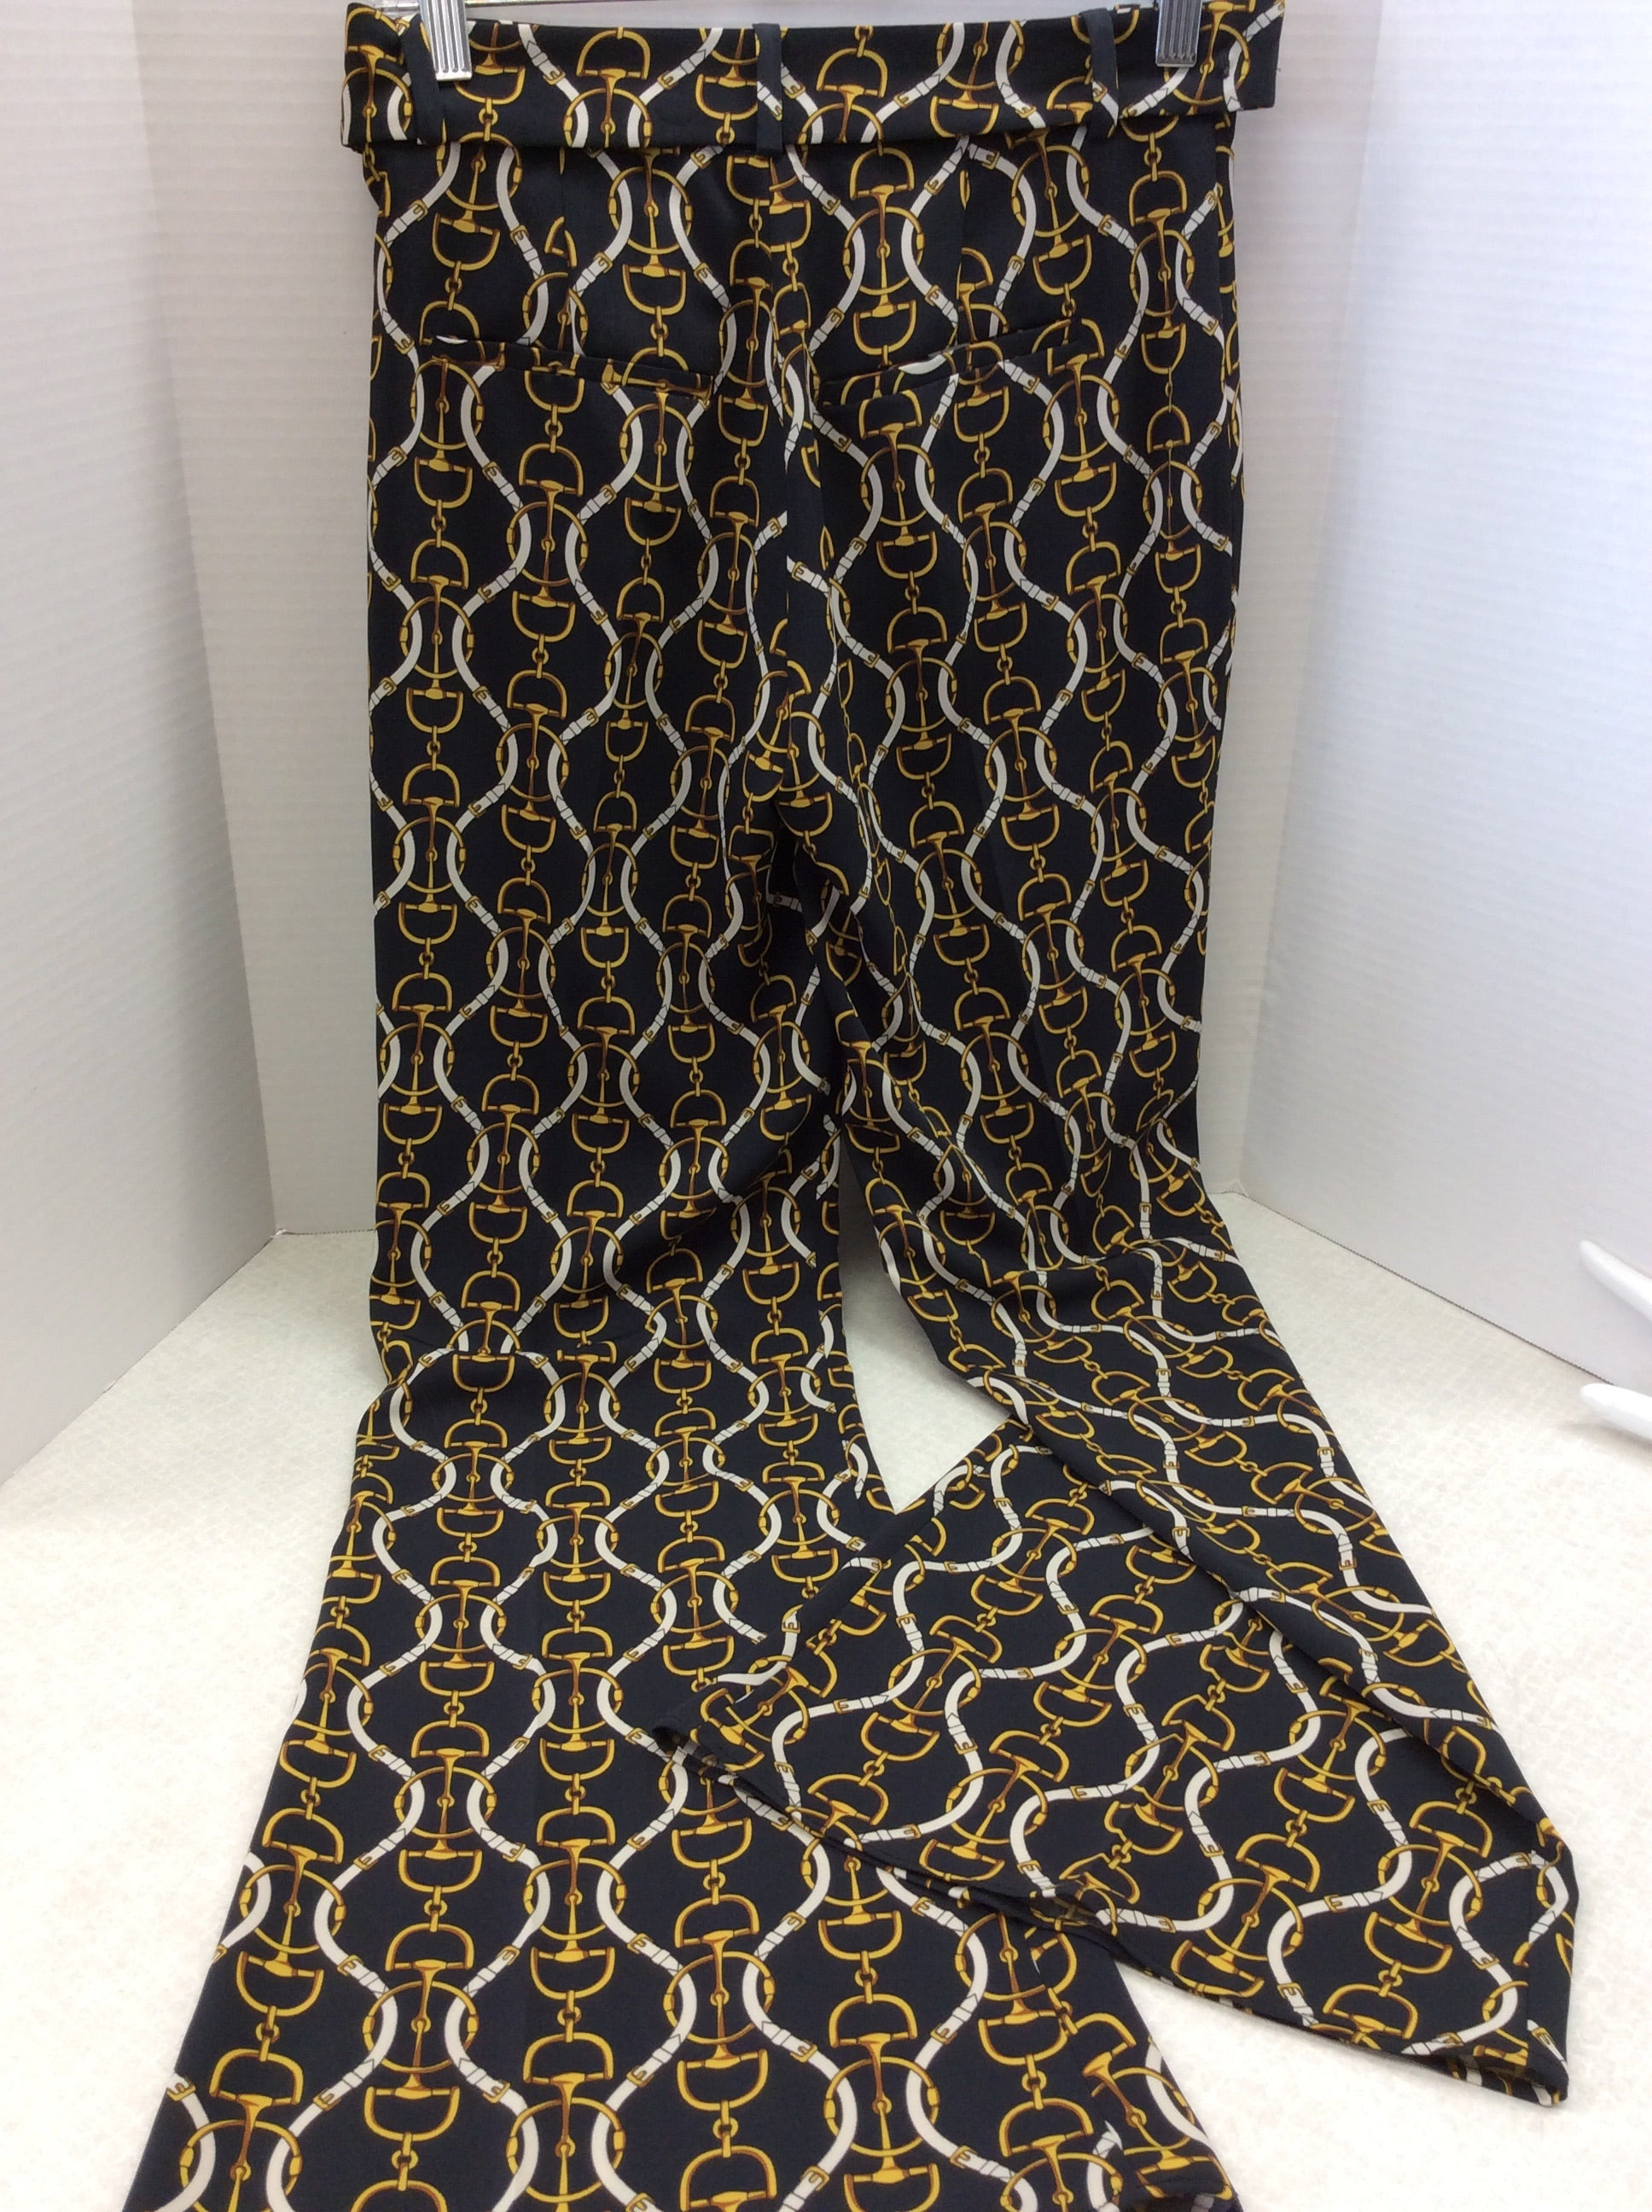 Photo #2 - BRAND: ZARA BASIC <BR>STYLE: PANTS <BR>COLOR: BLACK <BR>SIZE: XS <BR>SKU: 133-13341-41436<BR>WHAT A FUN MODERN TWIST ON A CLASSIC EQUESTRIAN PRINT PANT! SO ON TREND!